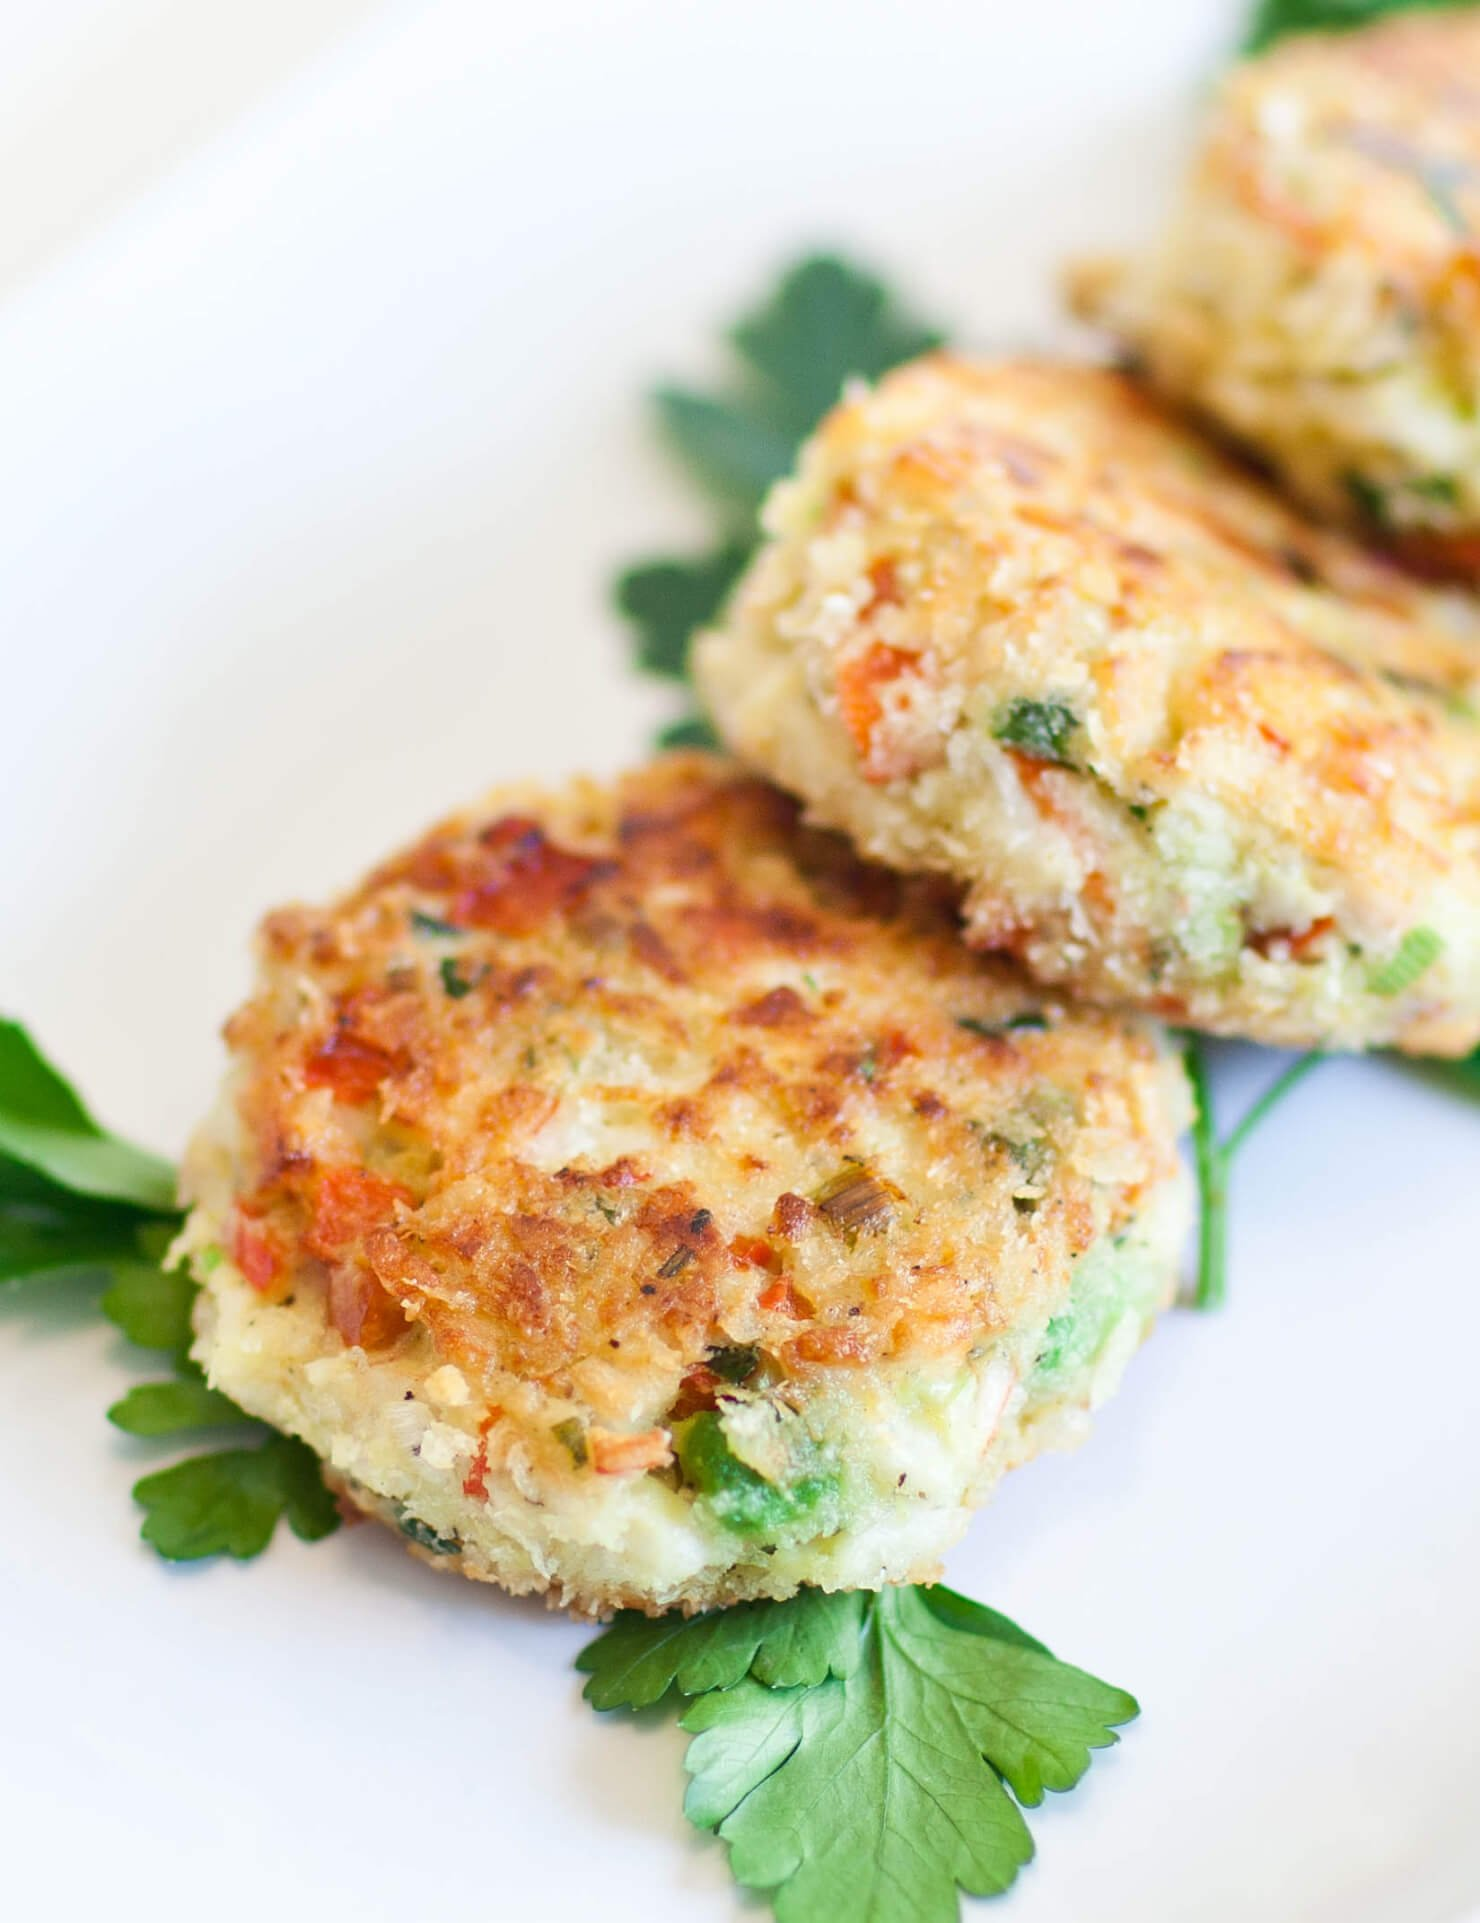 crab cakes with parsley leaves